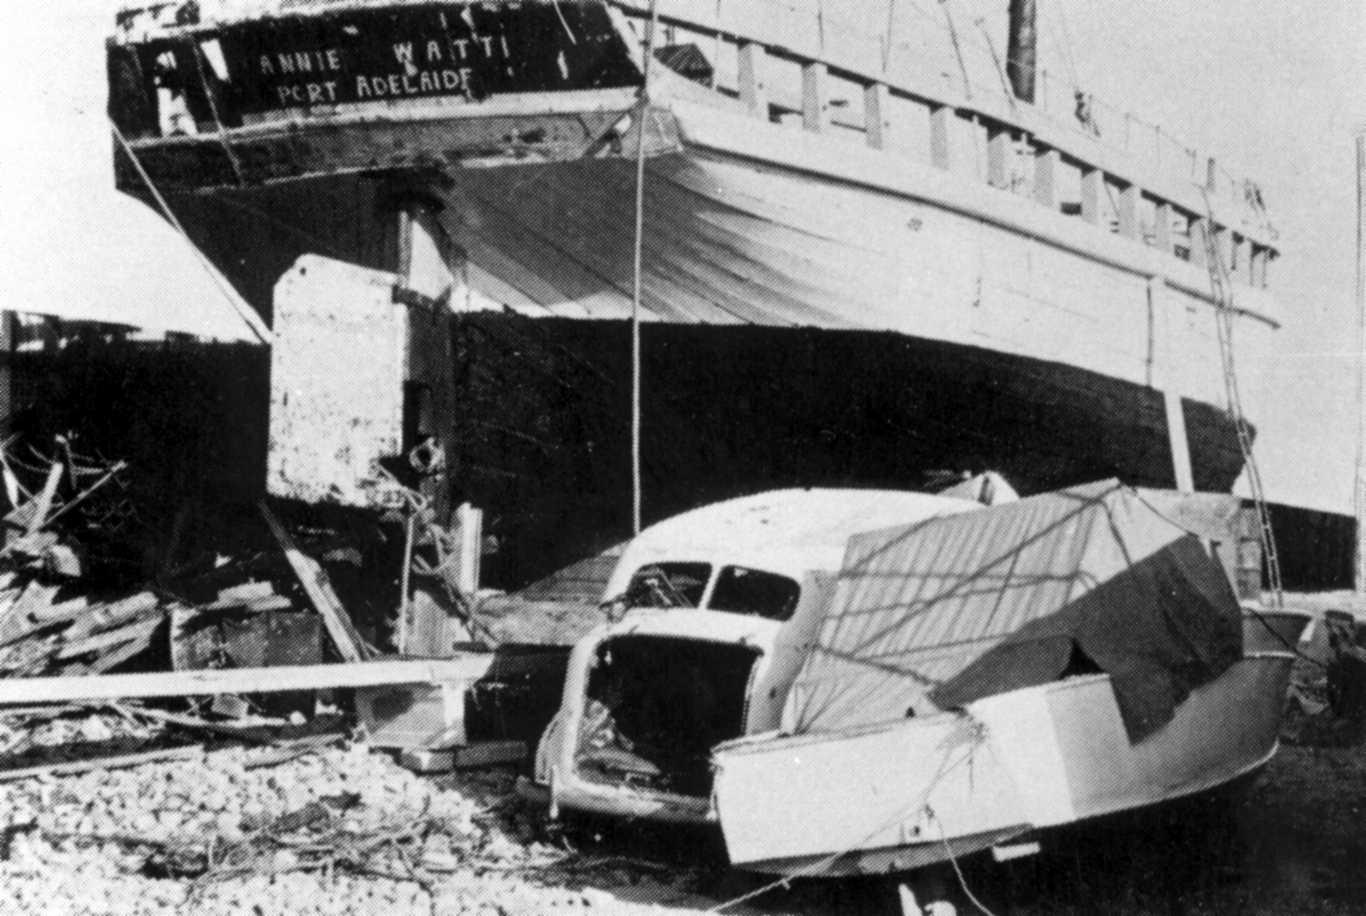 This image shows vessel on land from rear angle, showing rudder, and has an old car in foreground.